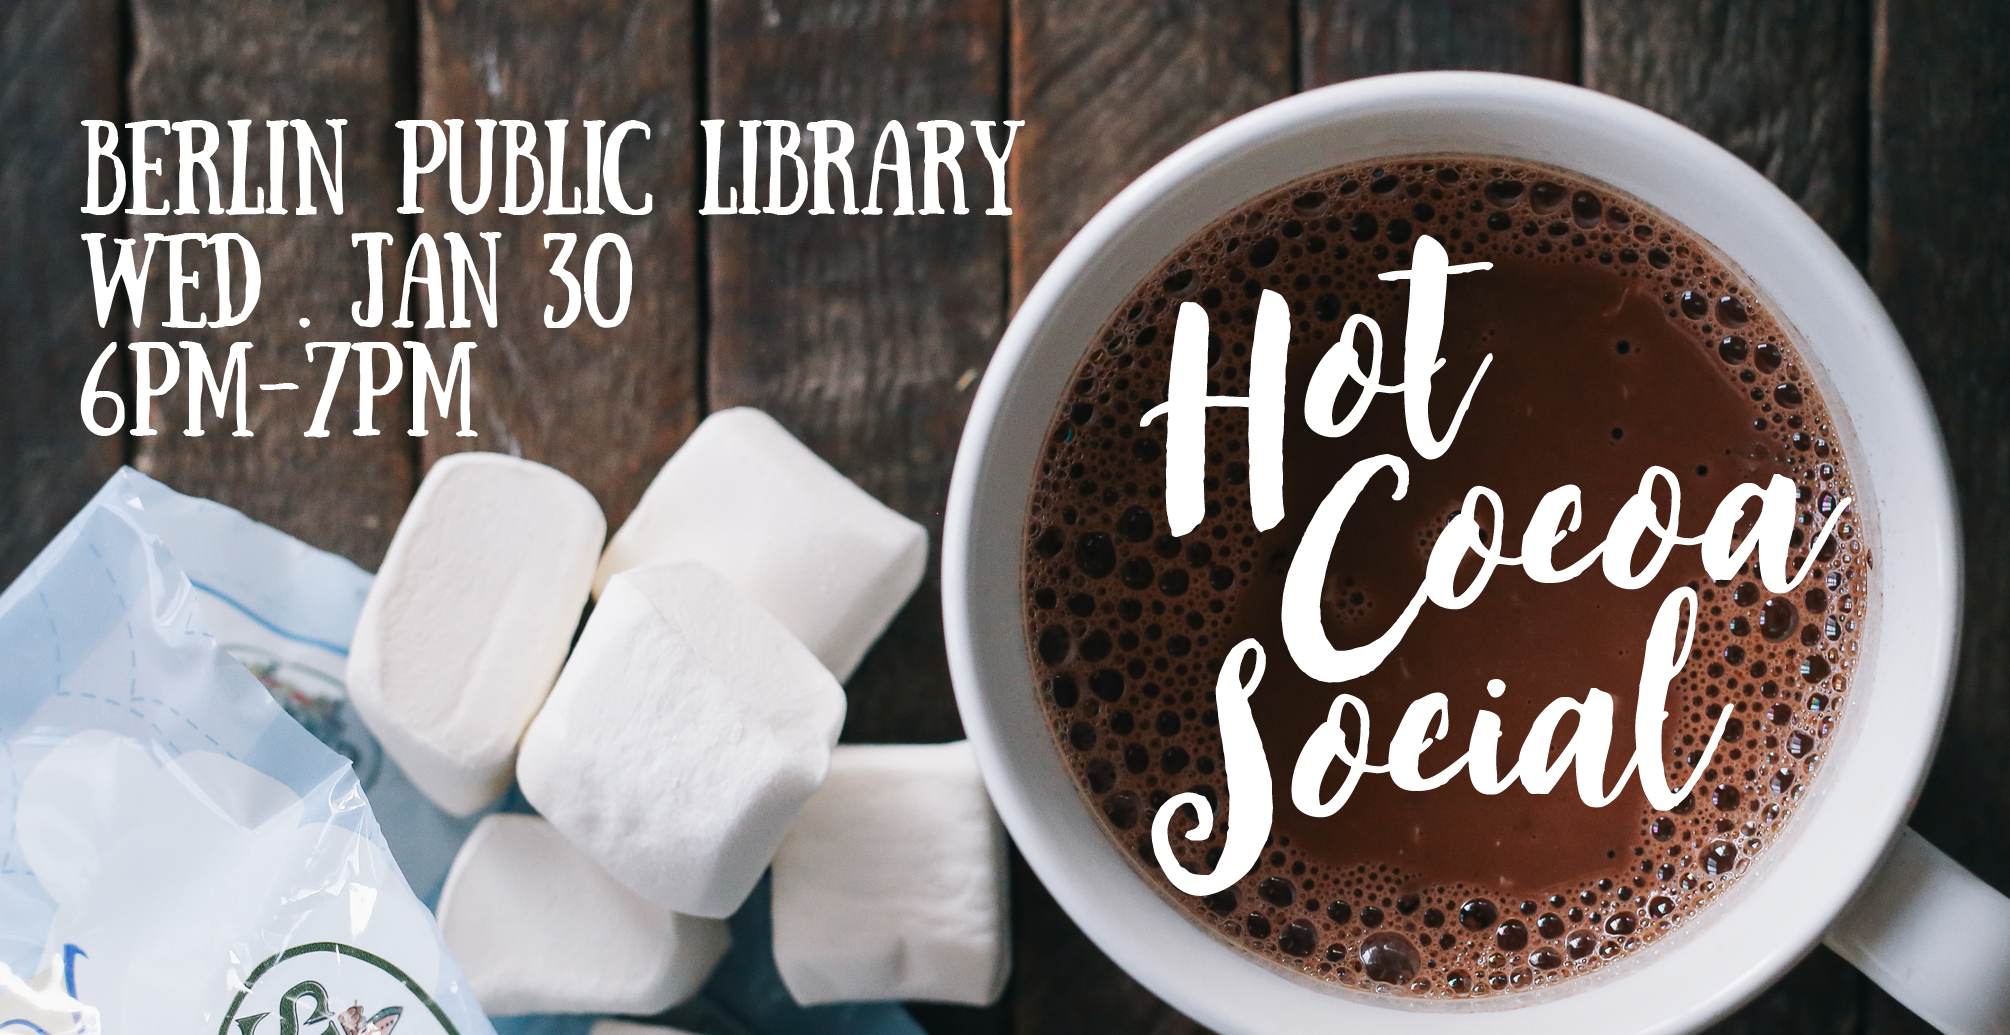 2019-01-LIBRARY-Berlin-Hot-Cocoa-Social-Slide